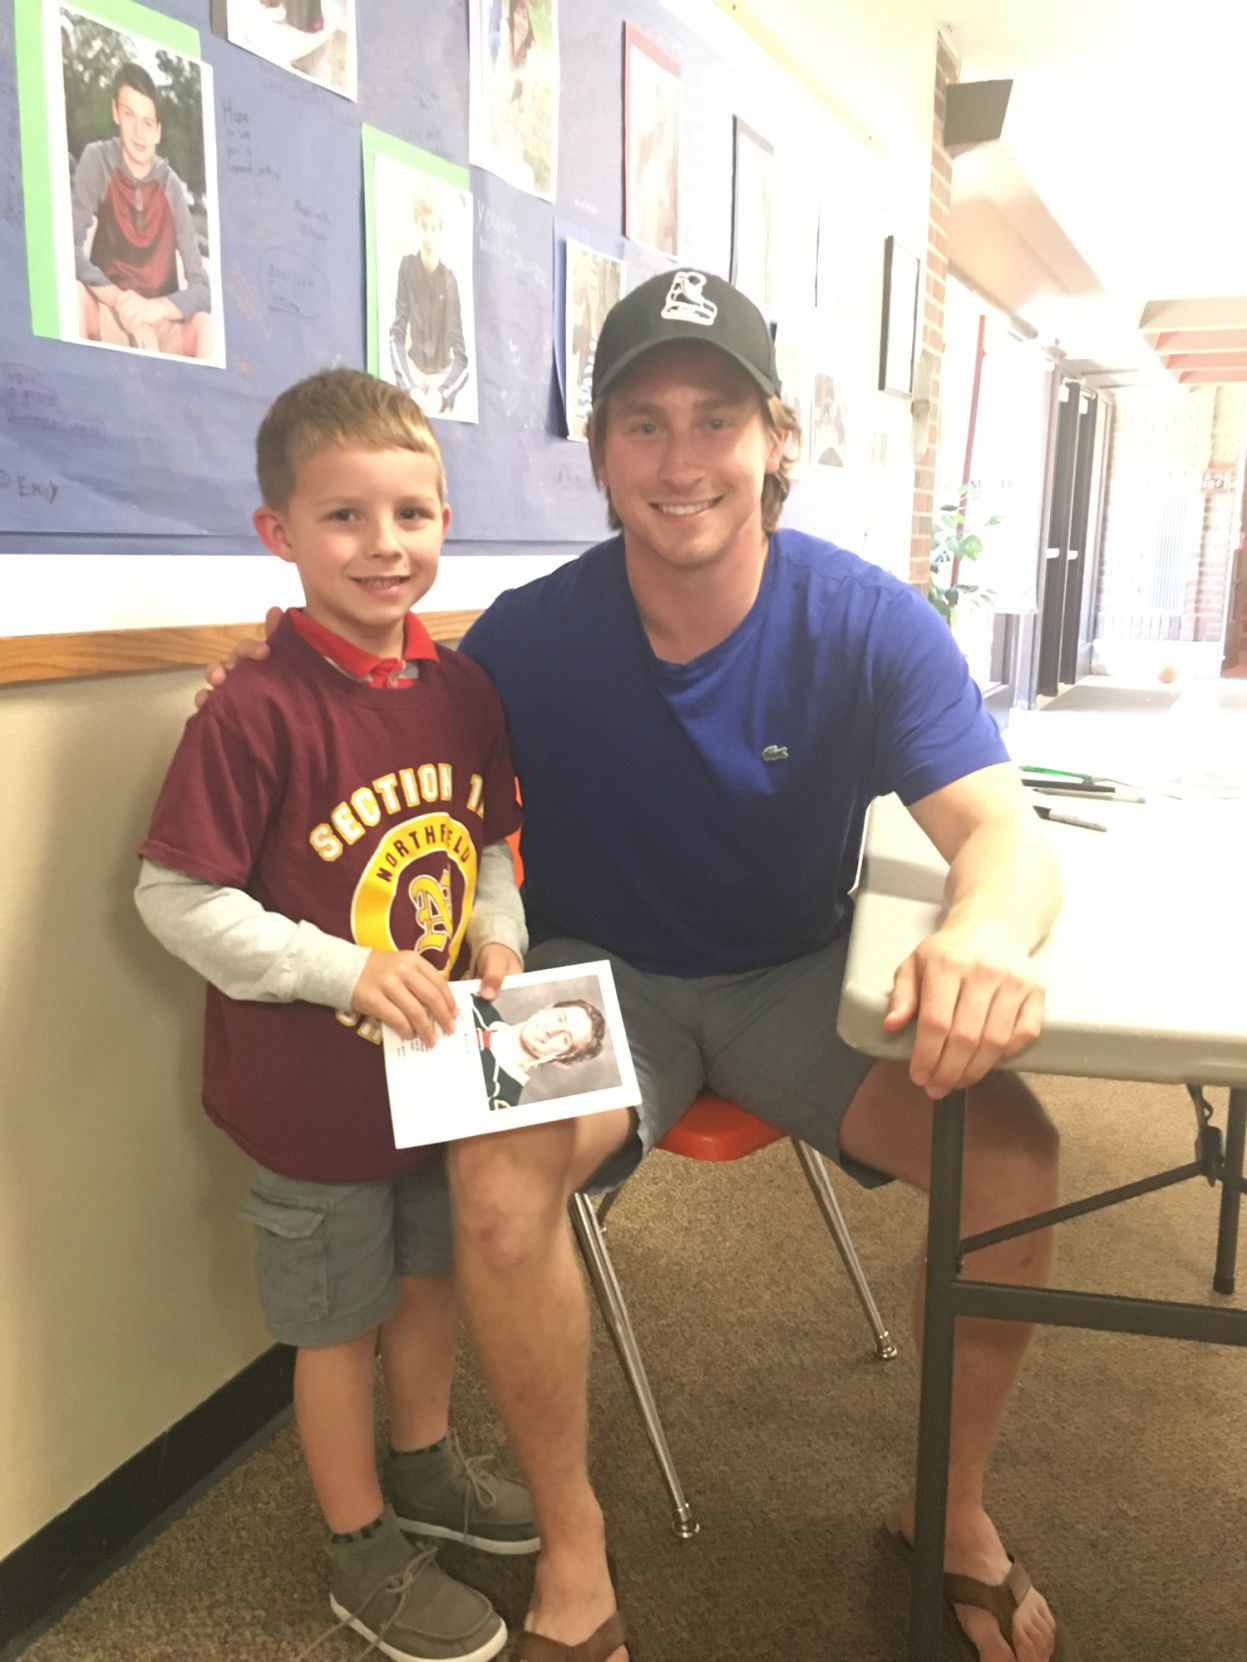 MN H.S.: Former Gophers Hockey Standout Kloos Visits St. Dominic Students